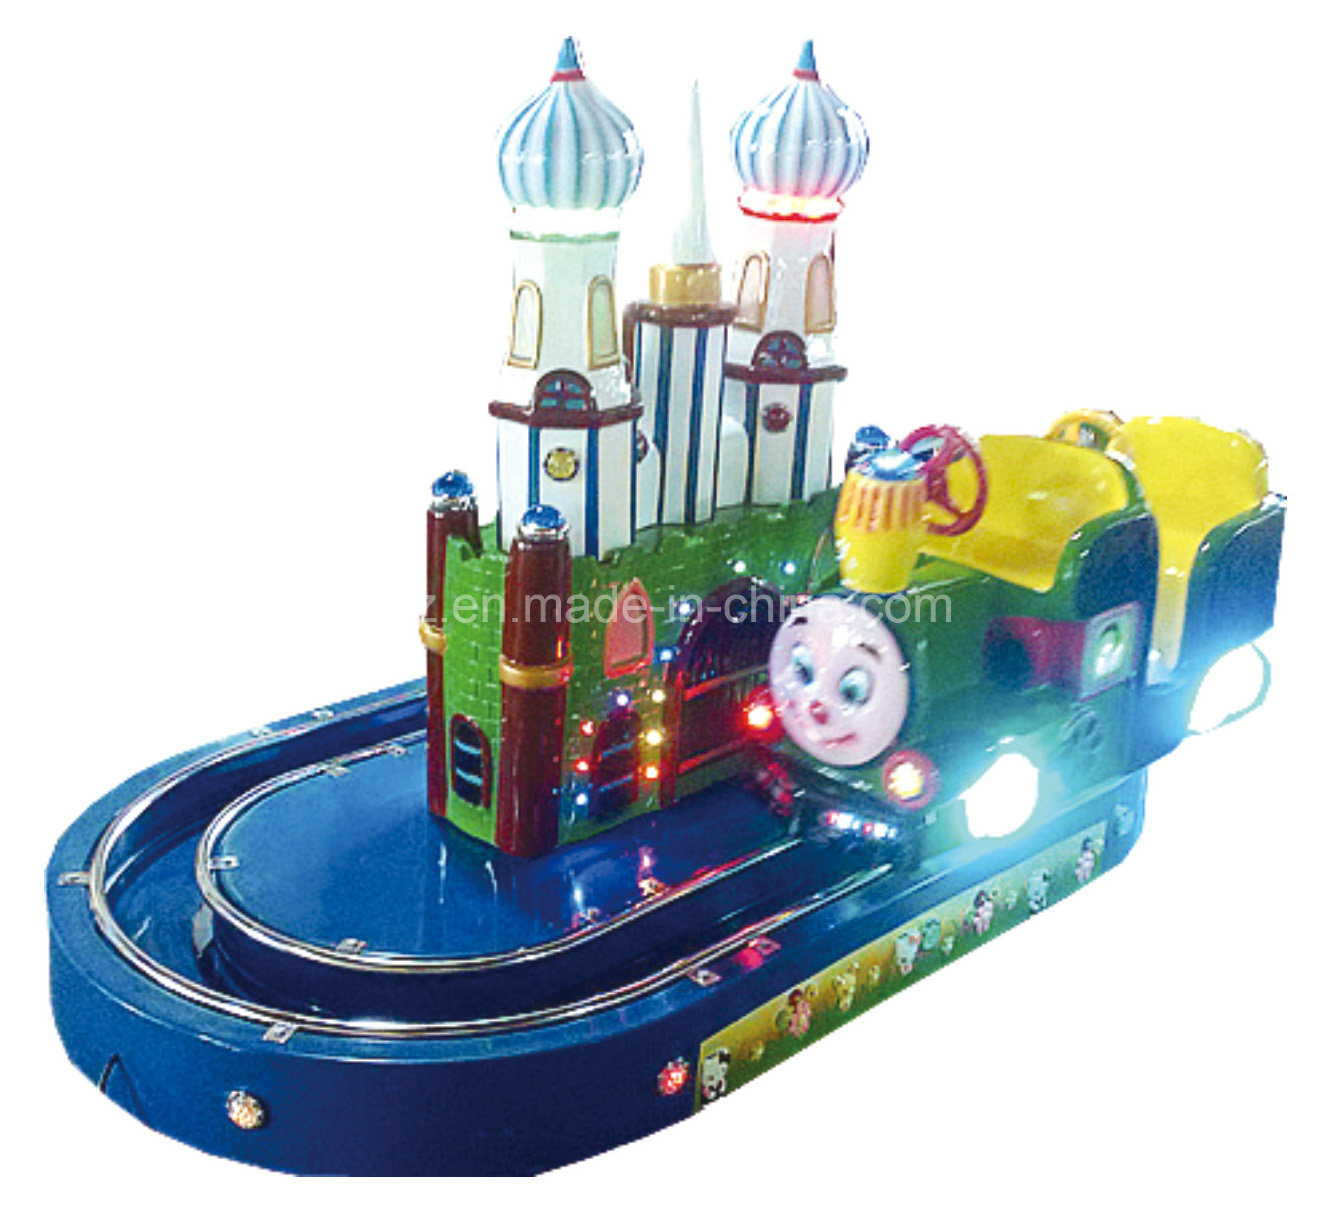 Top Sale Round Castle Train with Track for Kids Ride Thomas Train Ride